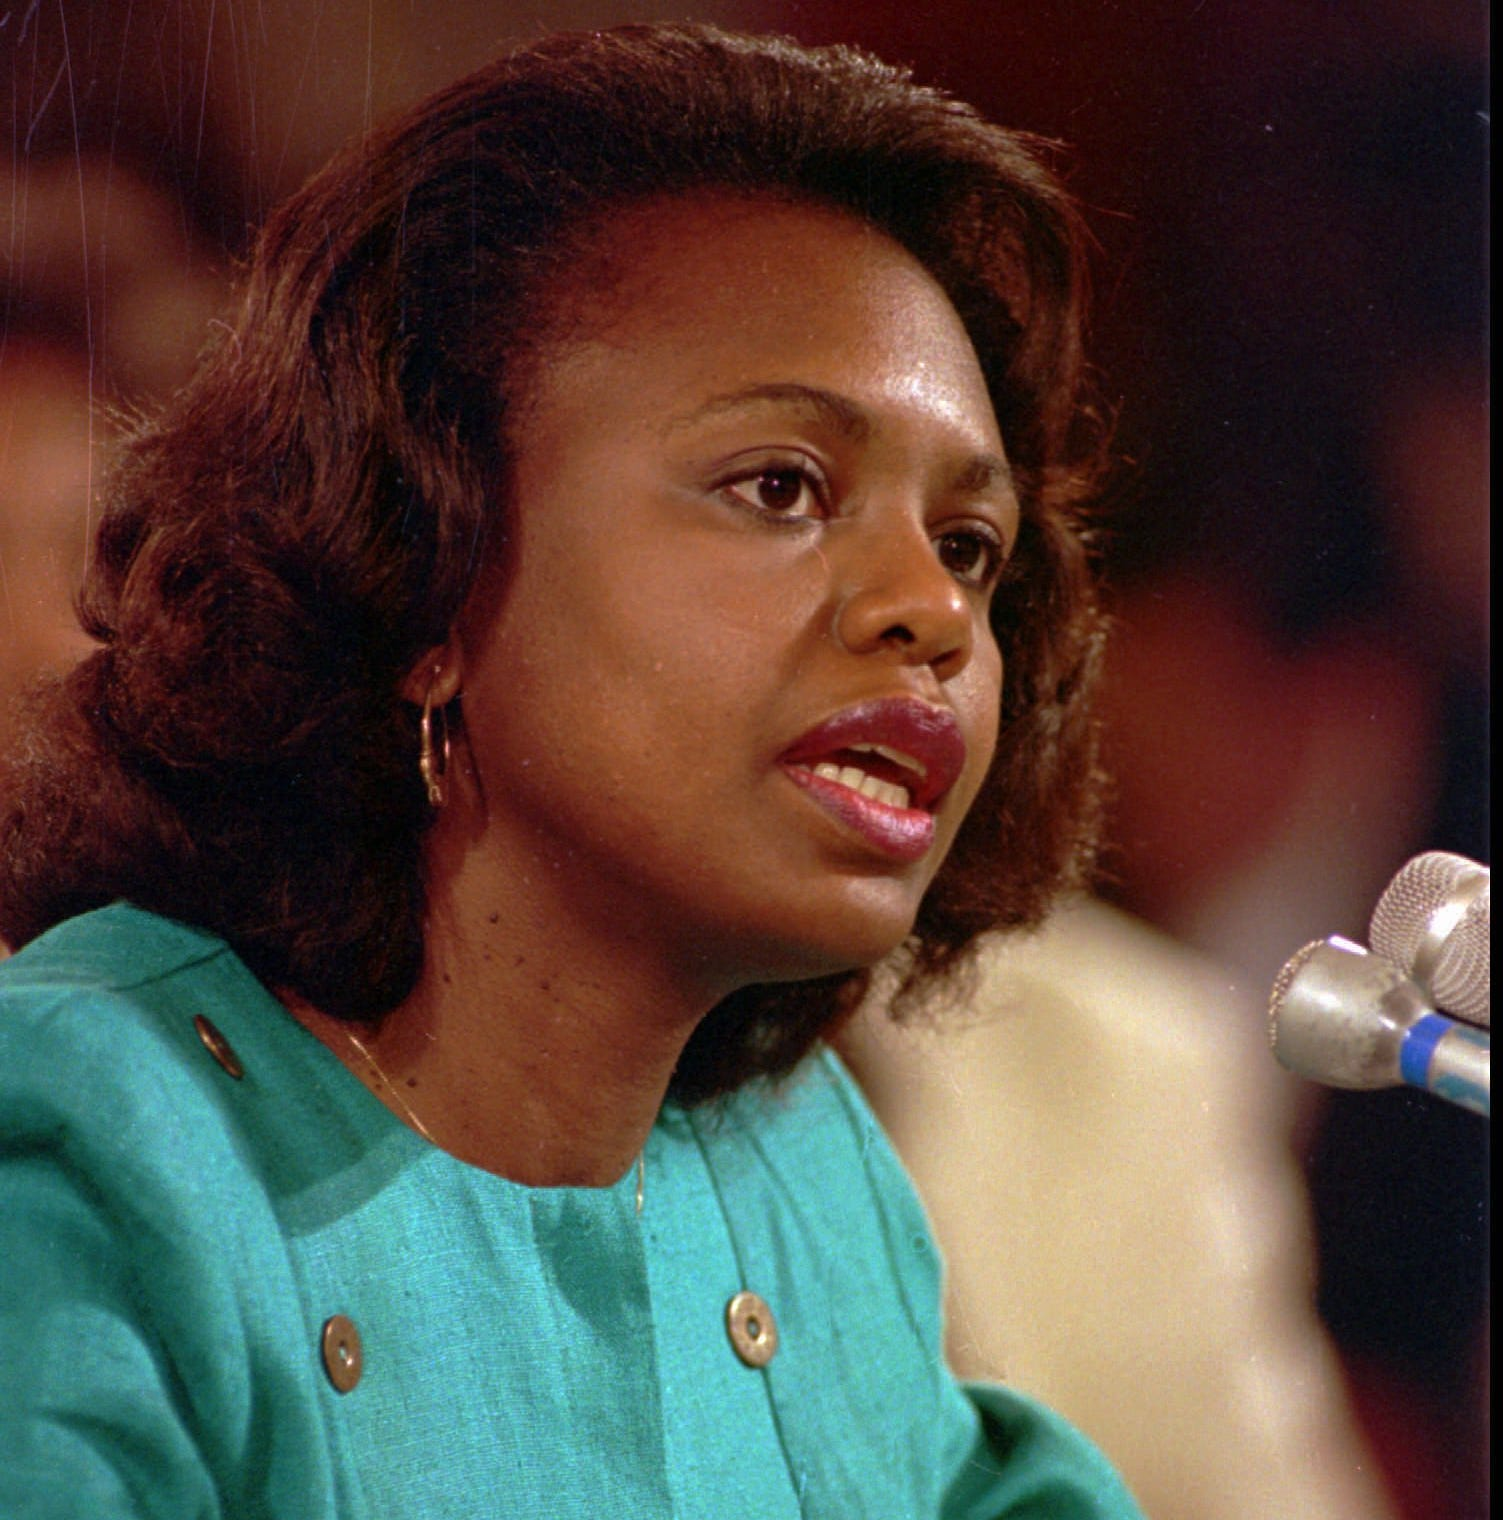 Biden expresses regret about handling of Anita Hill testimony in Clarence Thomas hearings